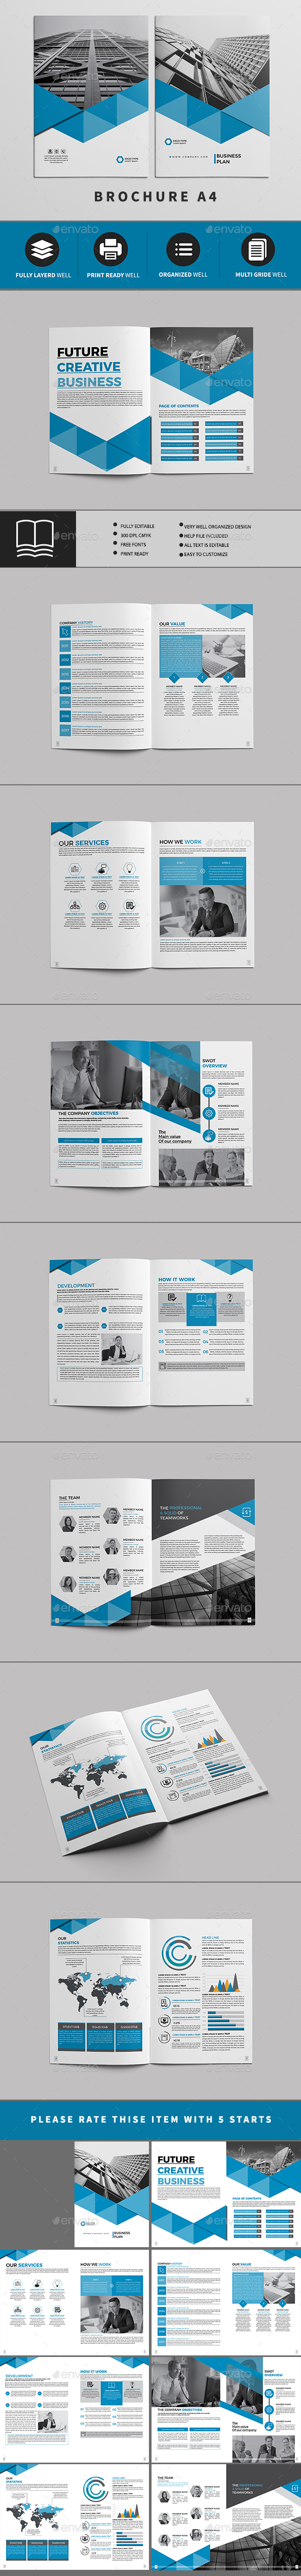 BROCHURE 16 PAGE - Brochures Print Templates